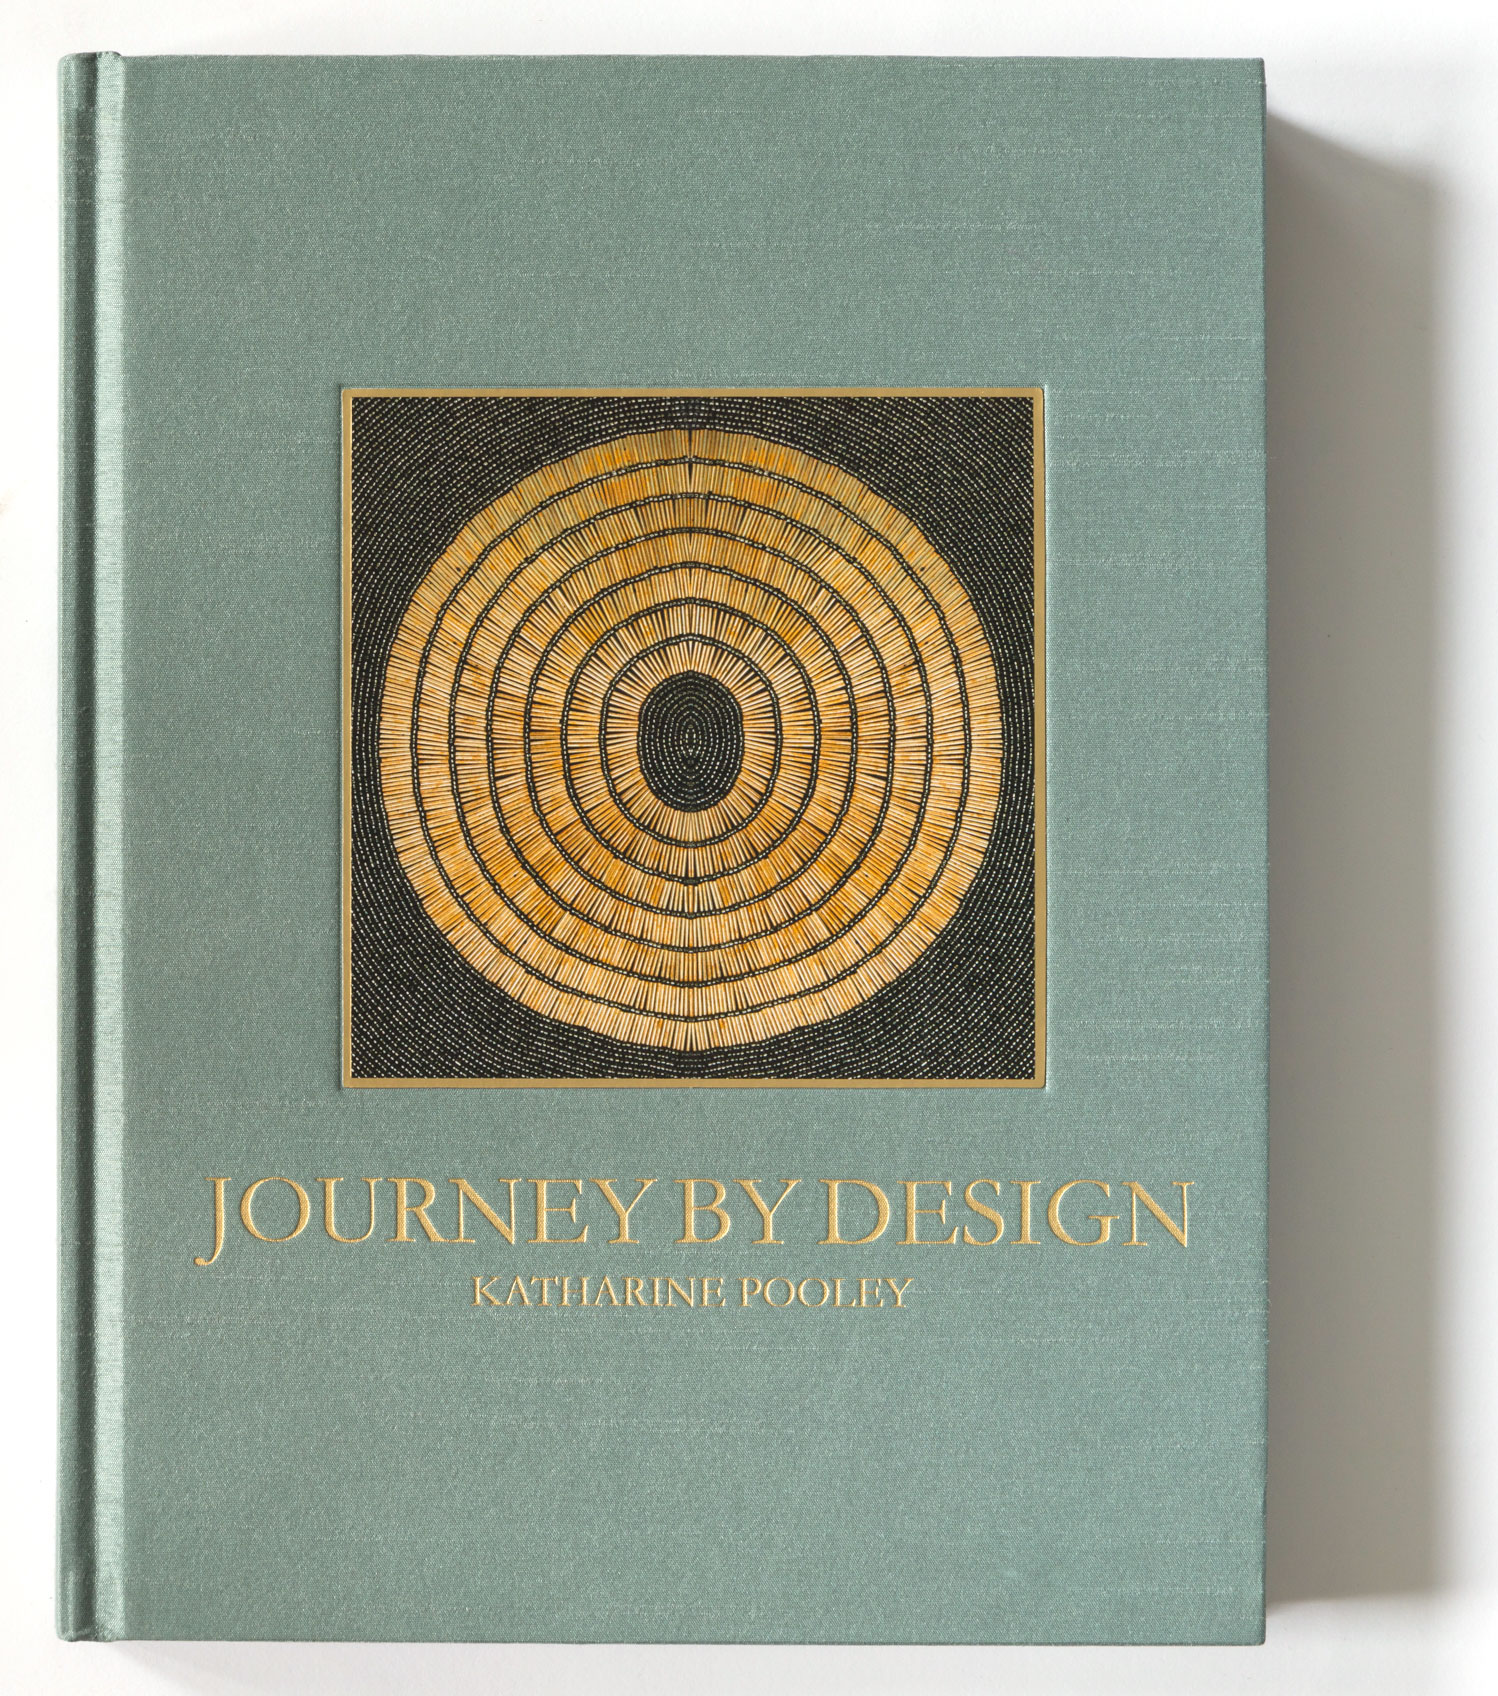 JOURNEY BY DESIGN - KATHARINE POOLEY - ASSOULINE - 2017 1